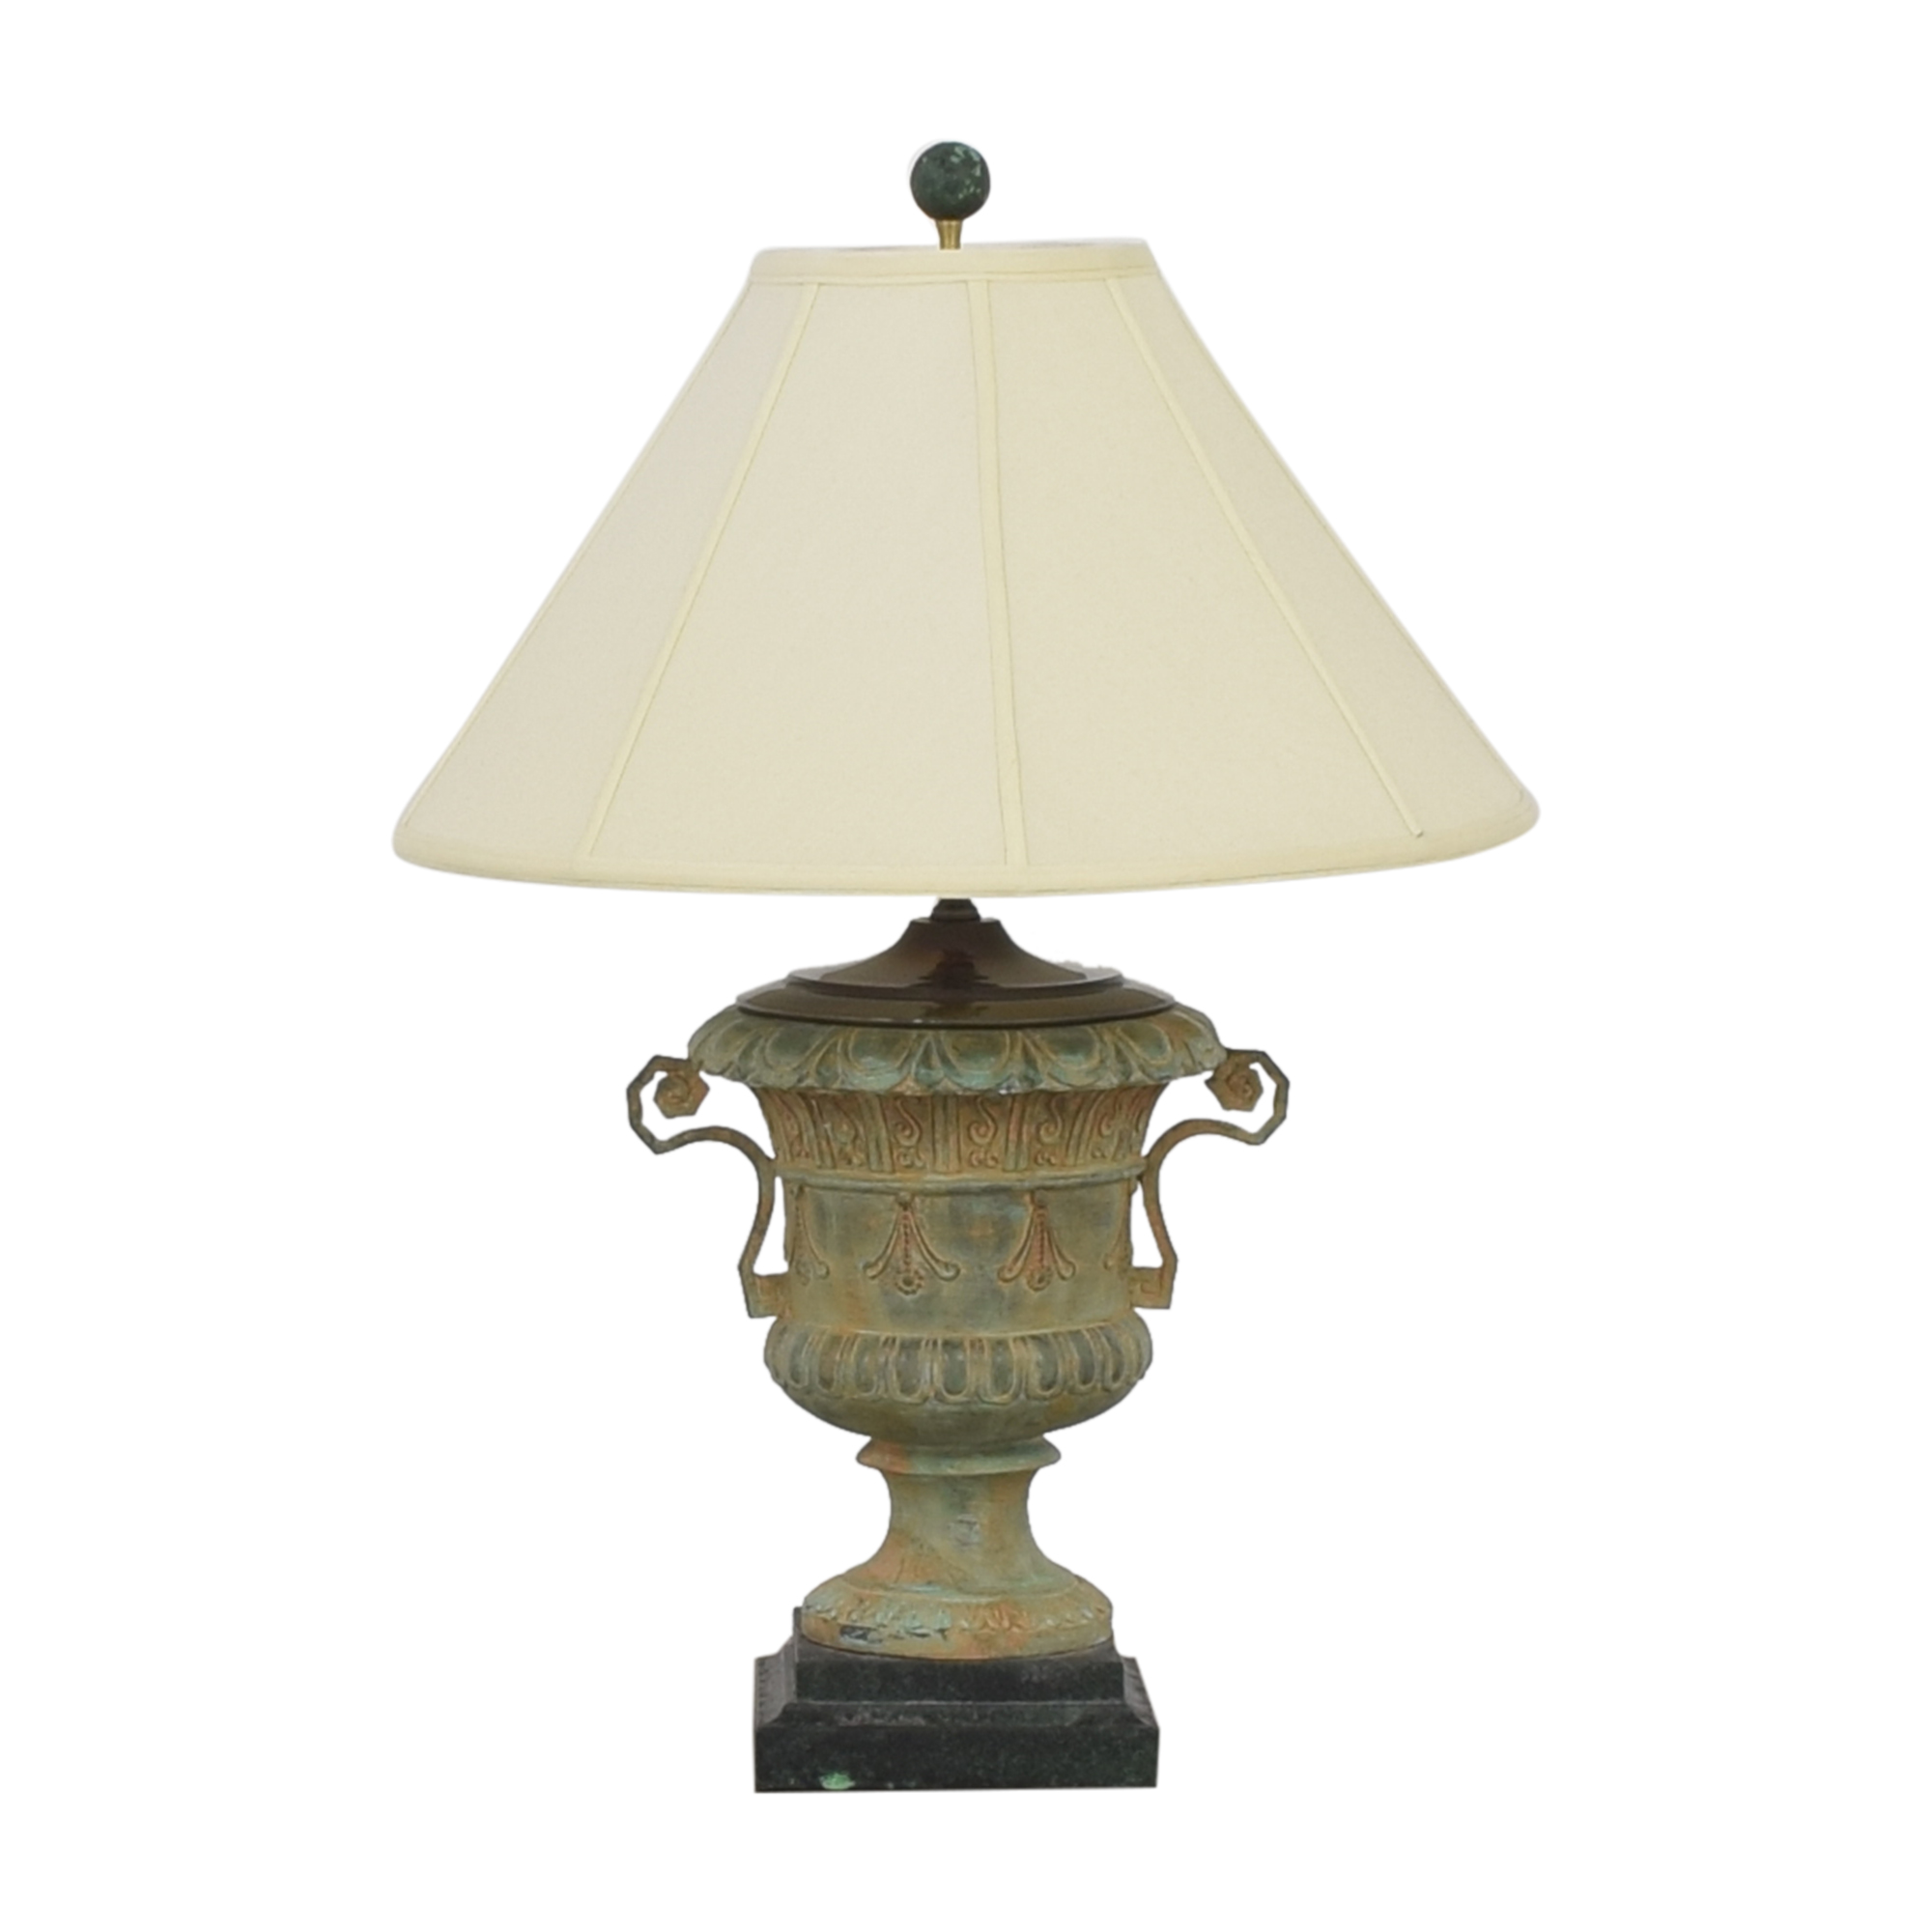 Canterbury Urn Style Table Lamp second hand